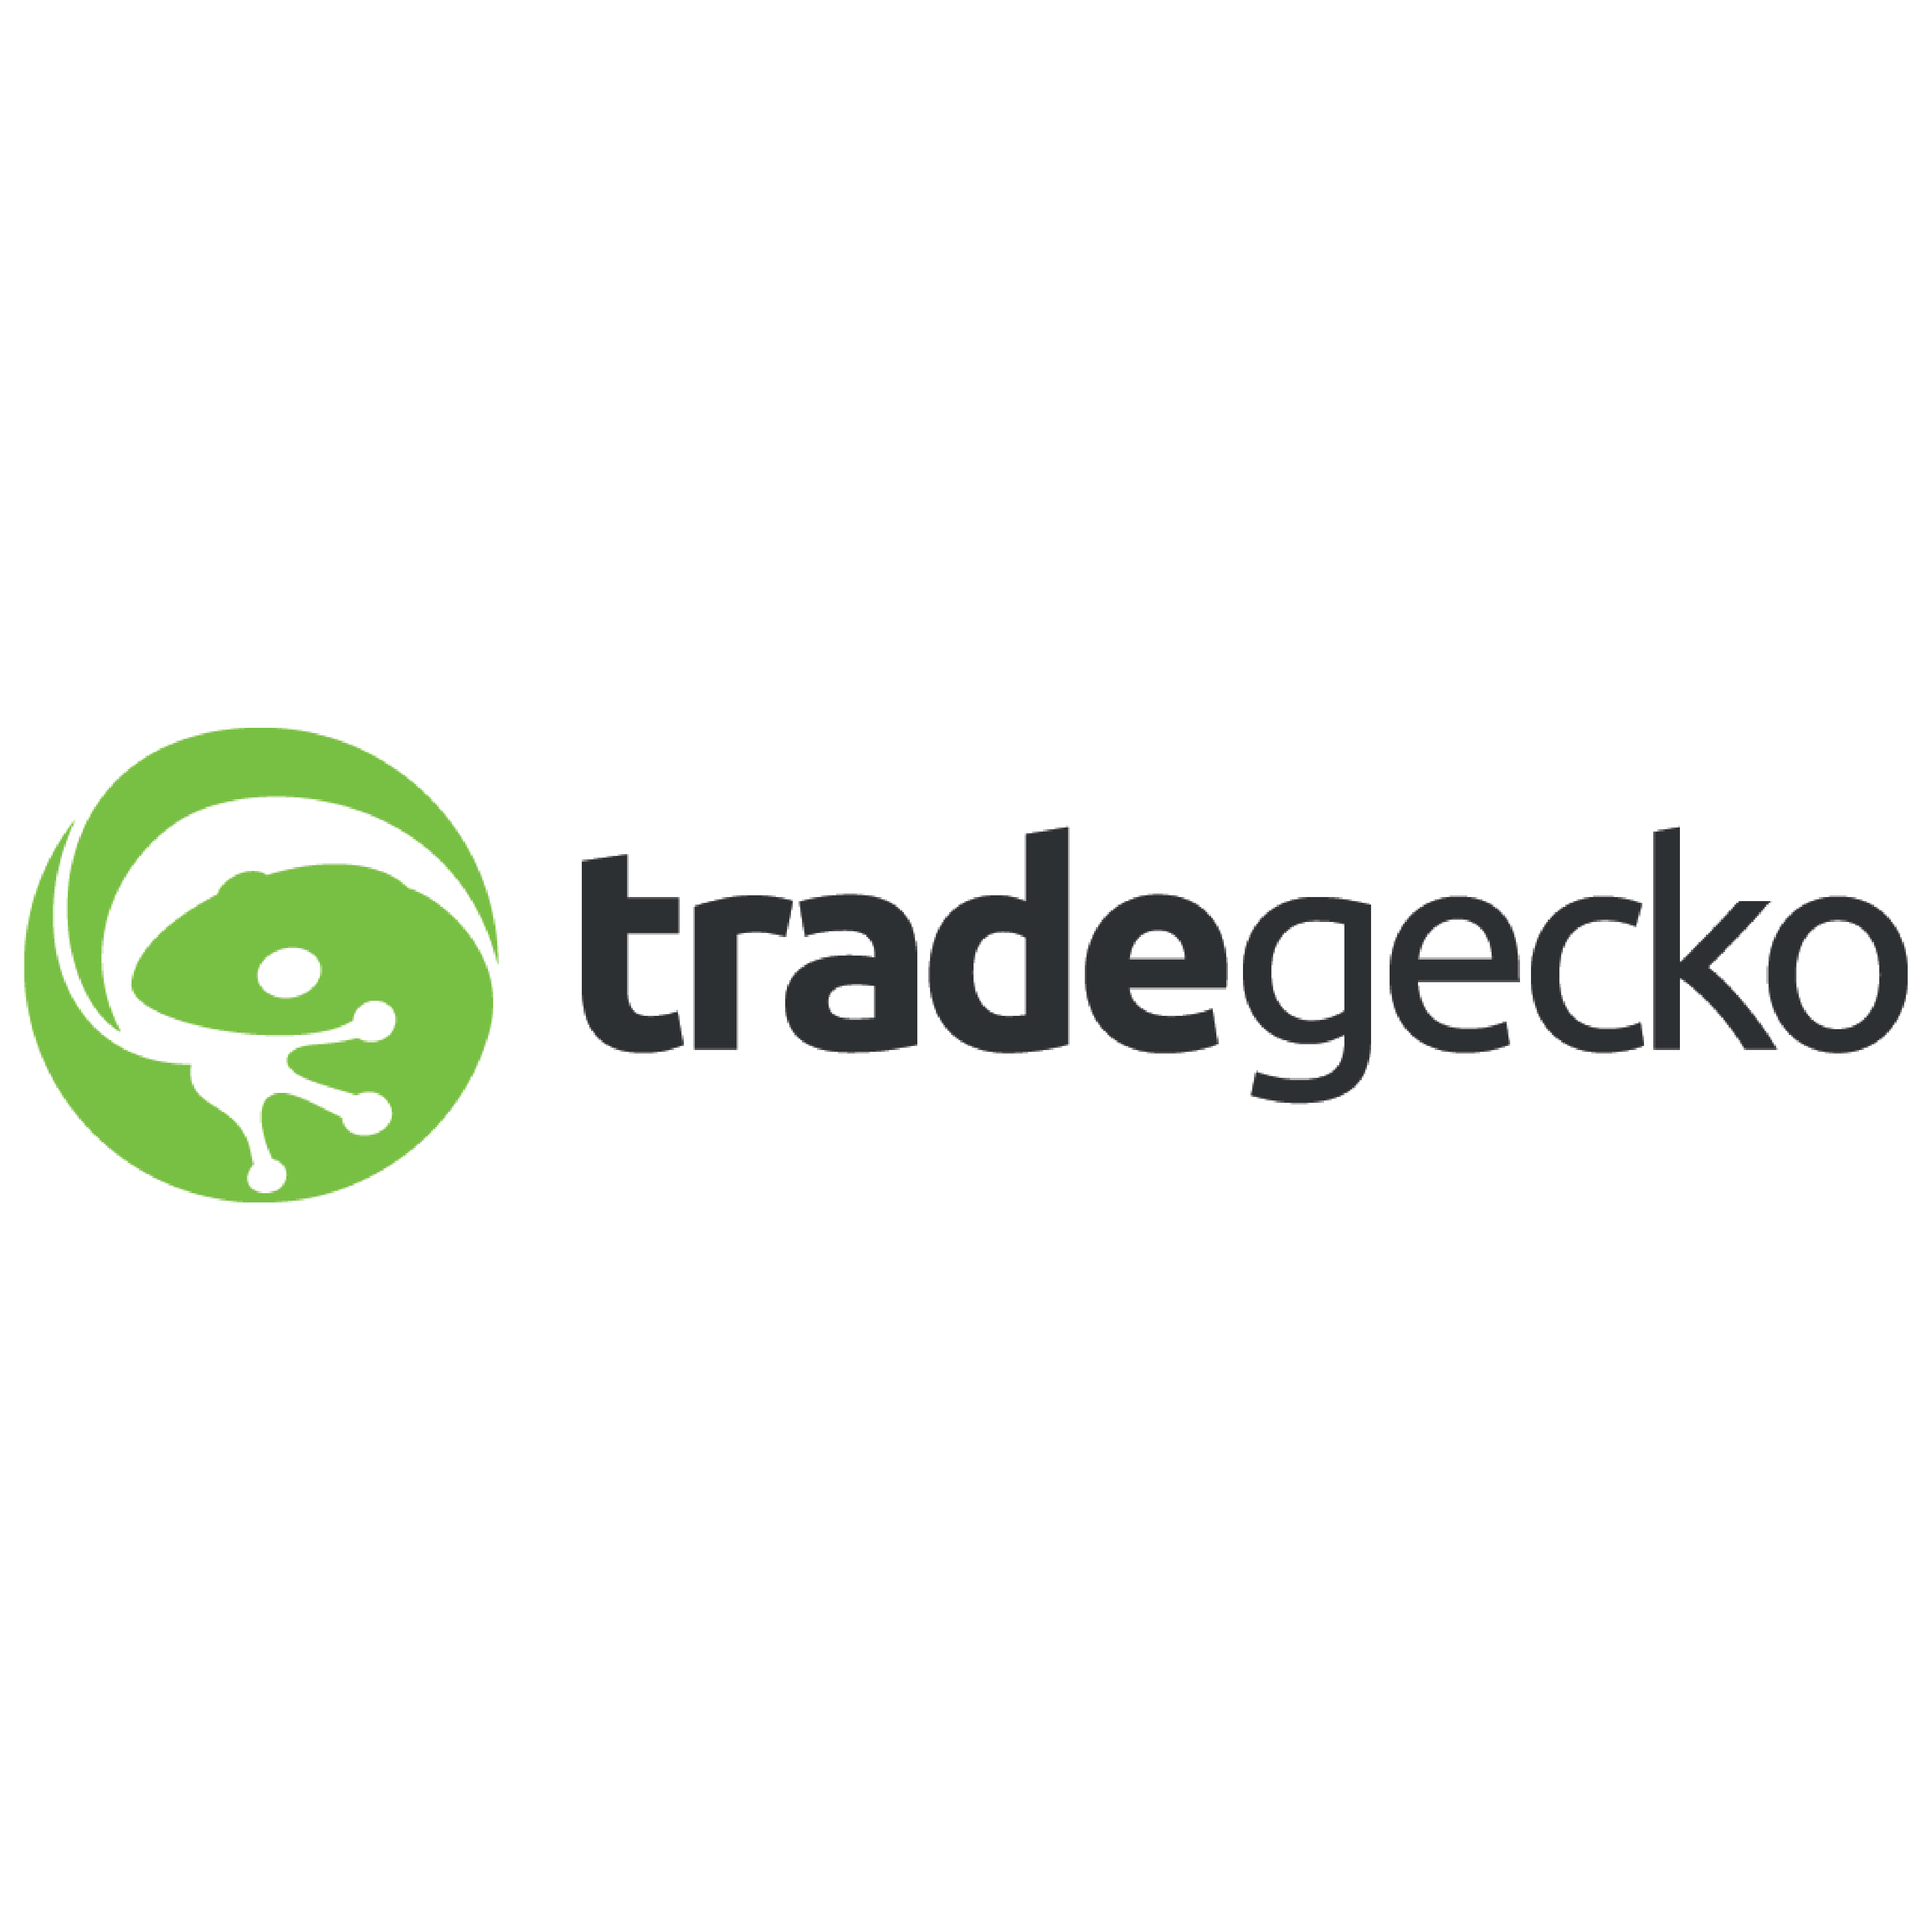 Trade Gecko Shipedge Integration